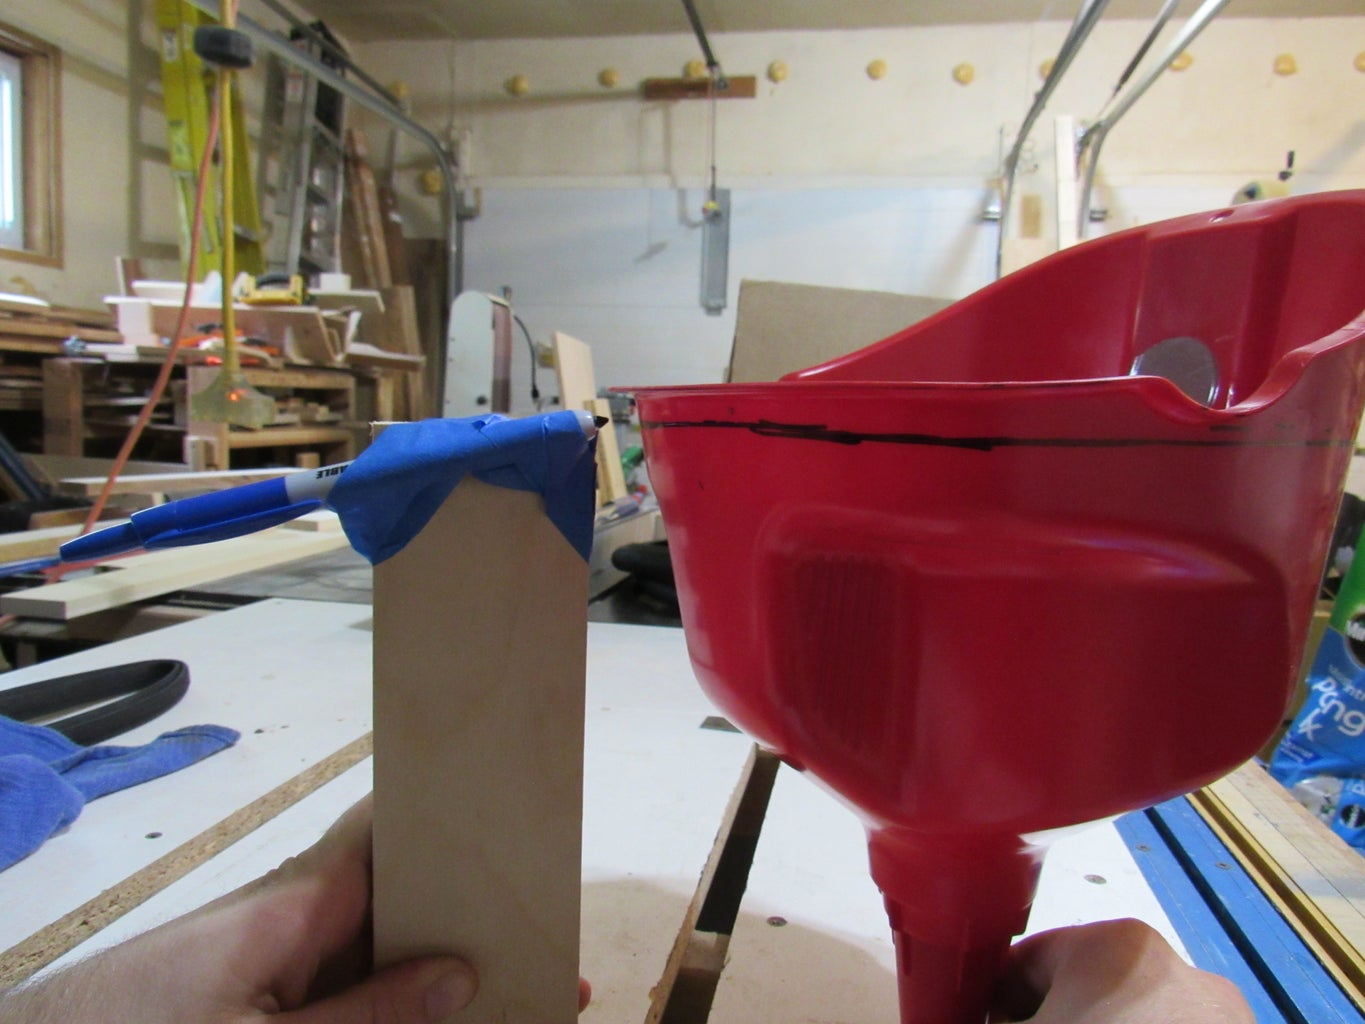 Construct and Install the Skittle Funnel